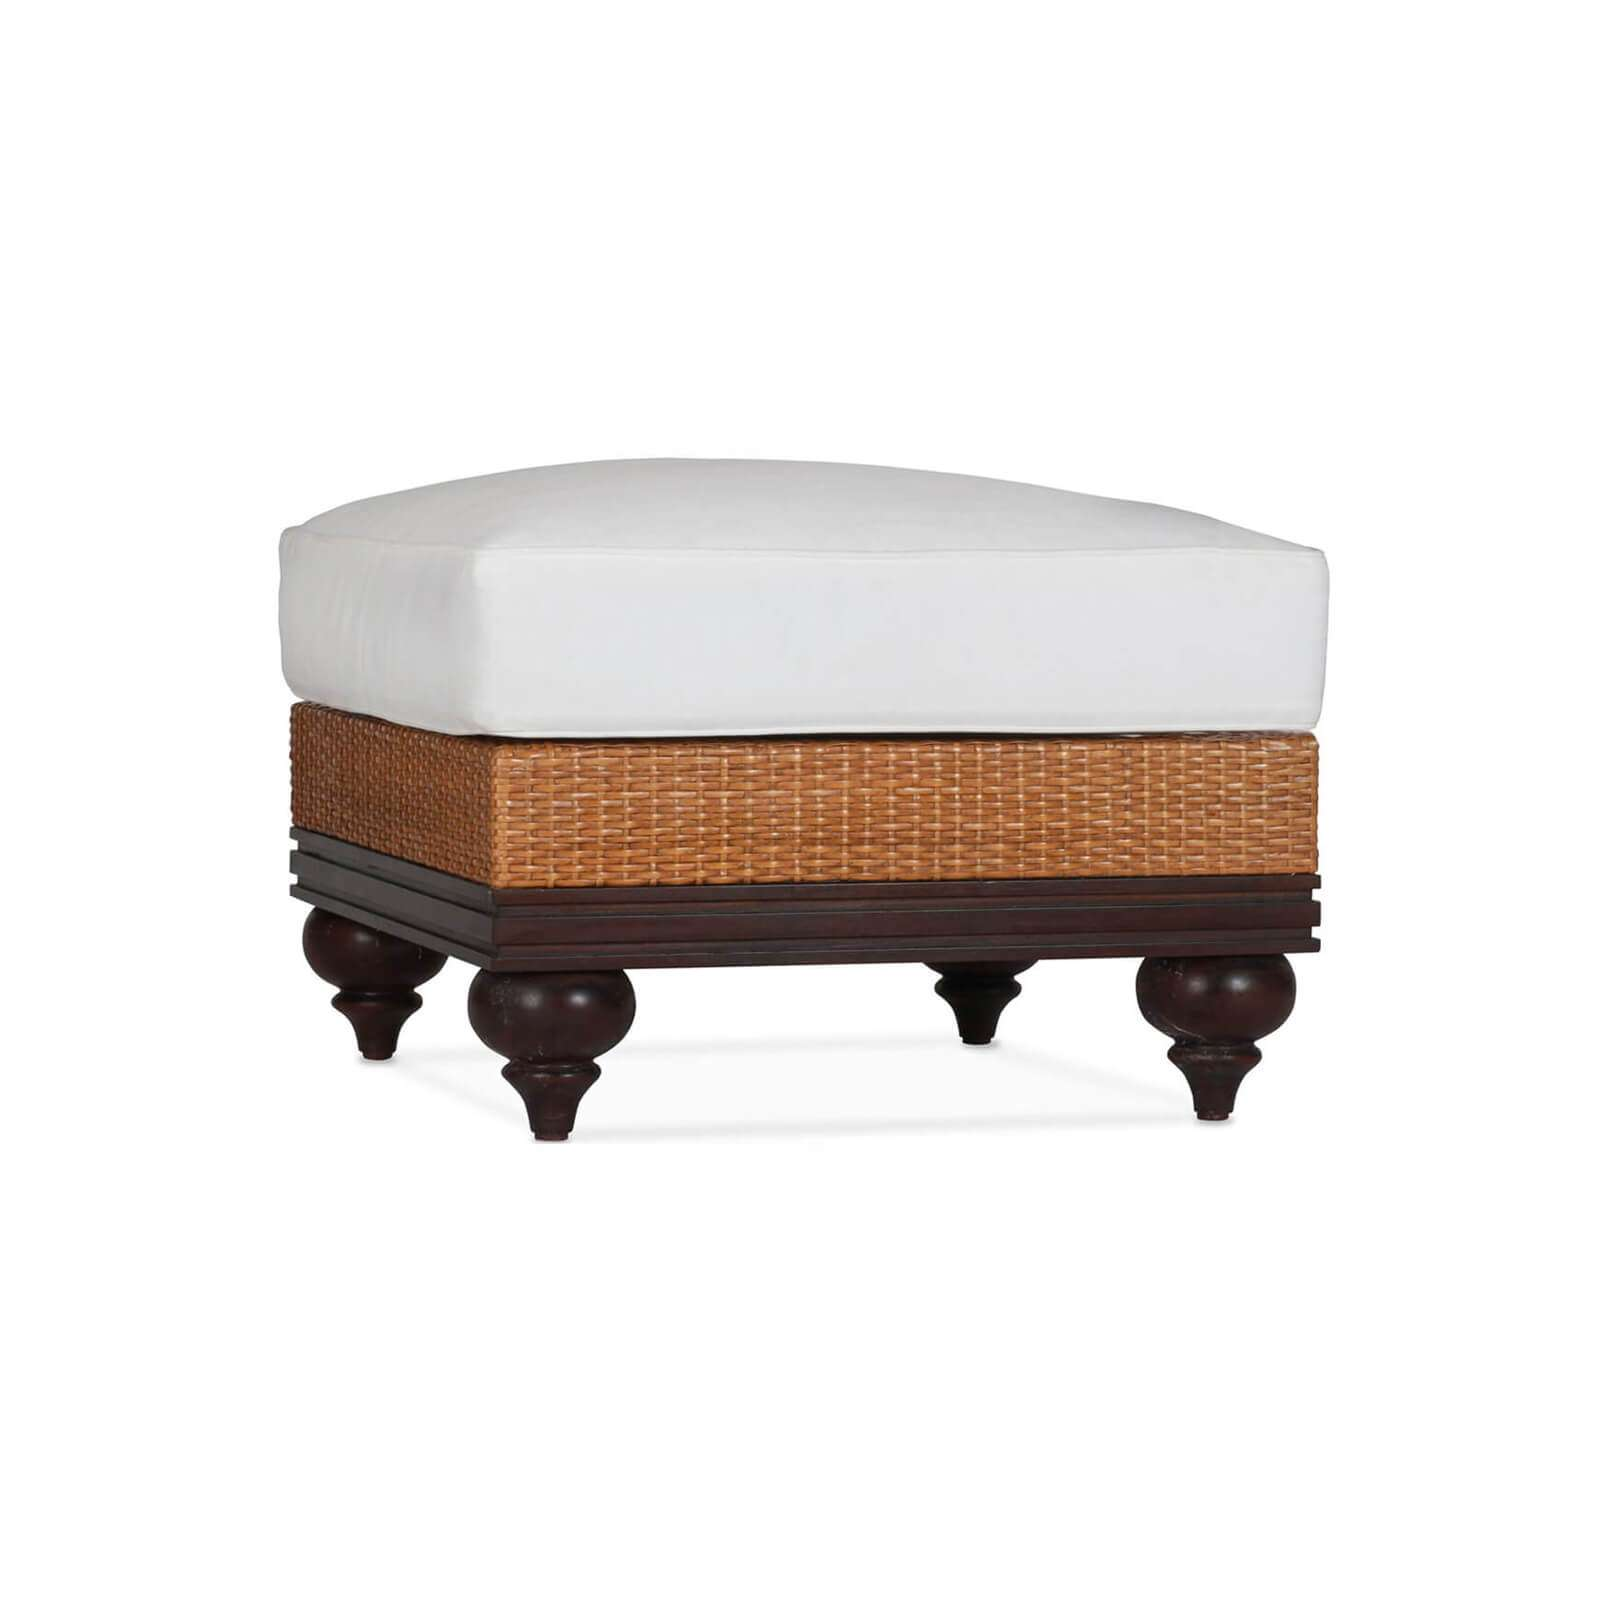 PLANTATION OTTOMAN 01 - STUART MEMBERY HOME COLLECTION